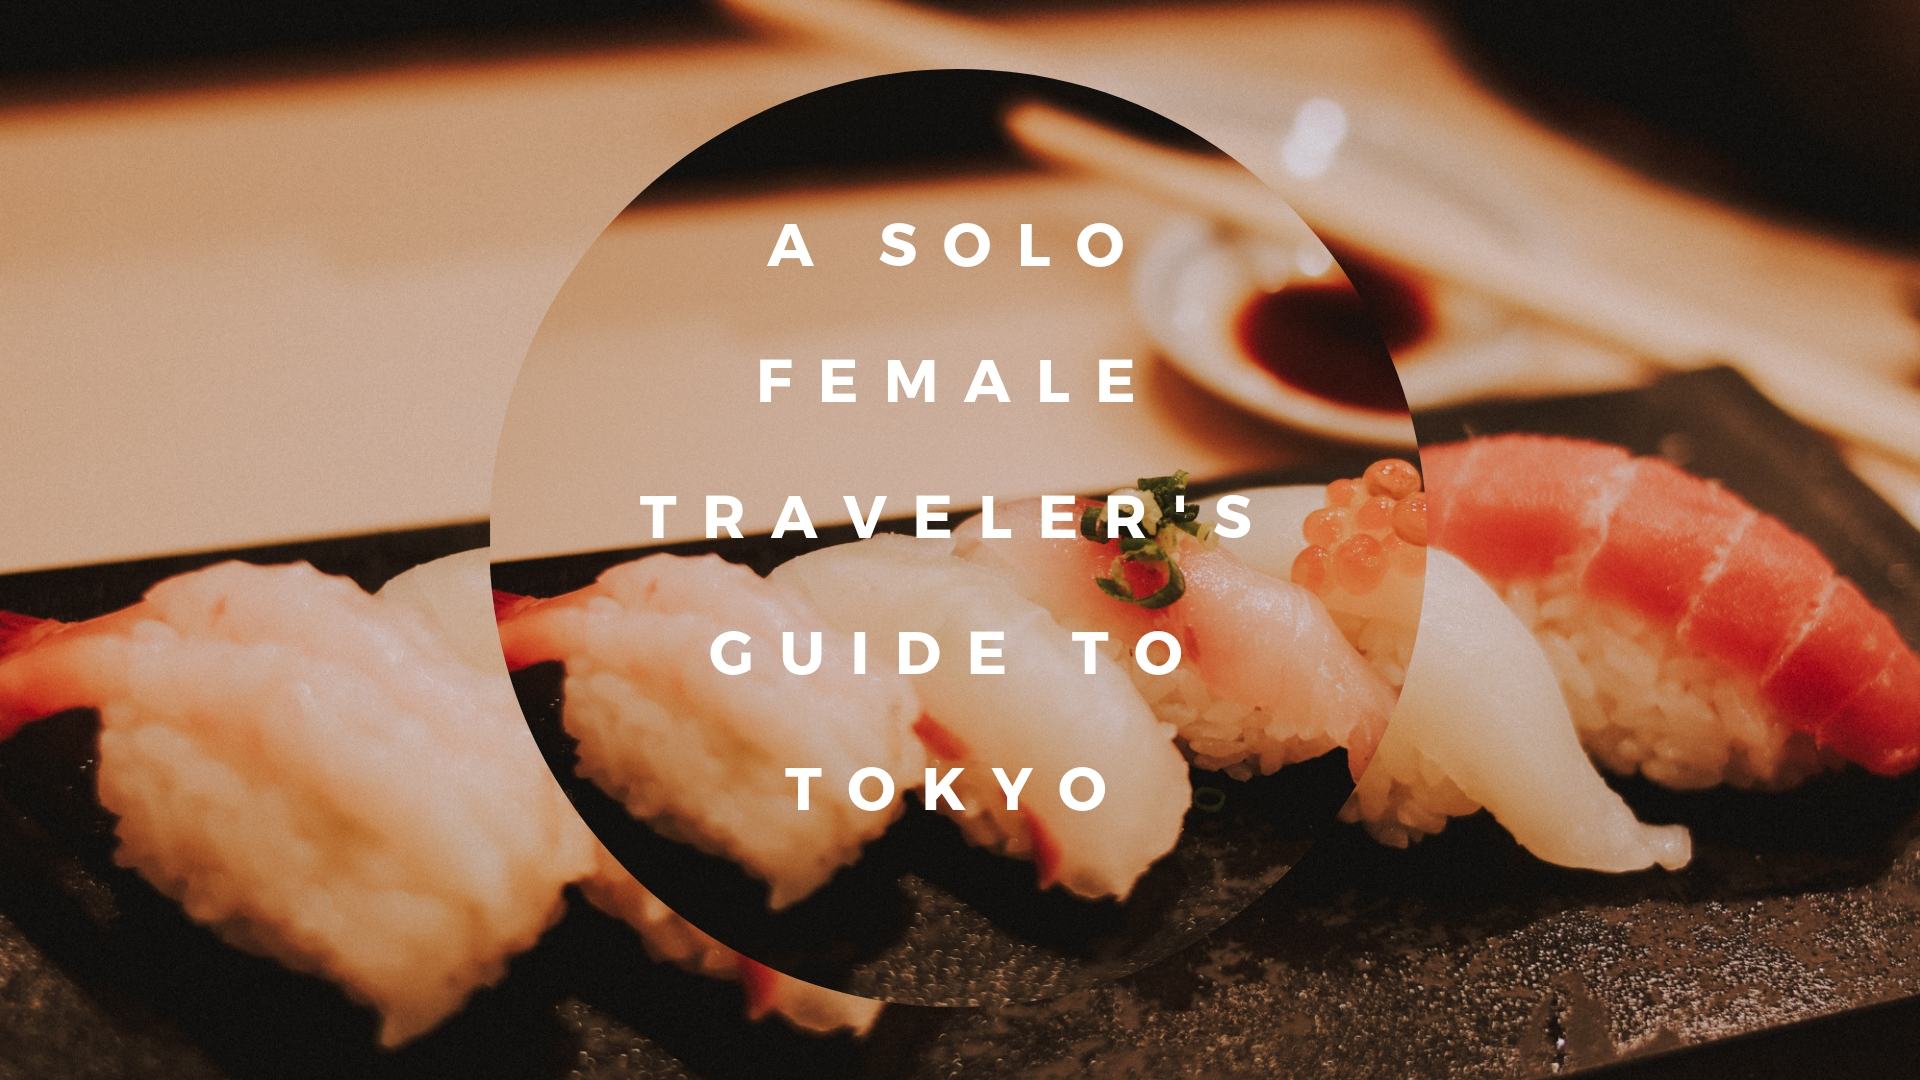 A Solo Female Traveler's Guide to Tokyo